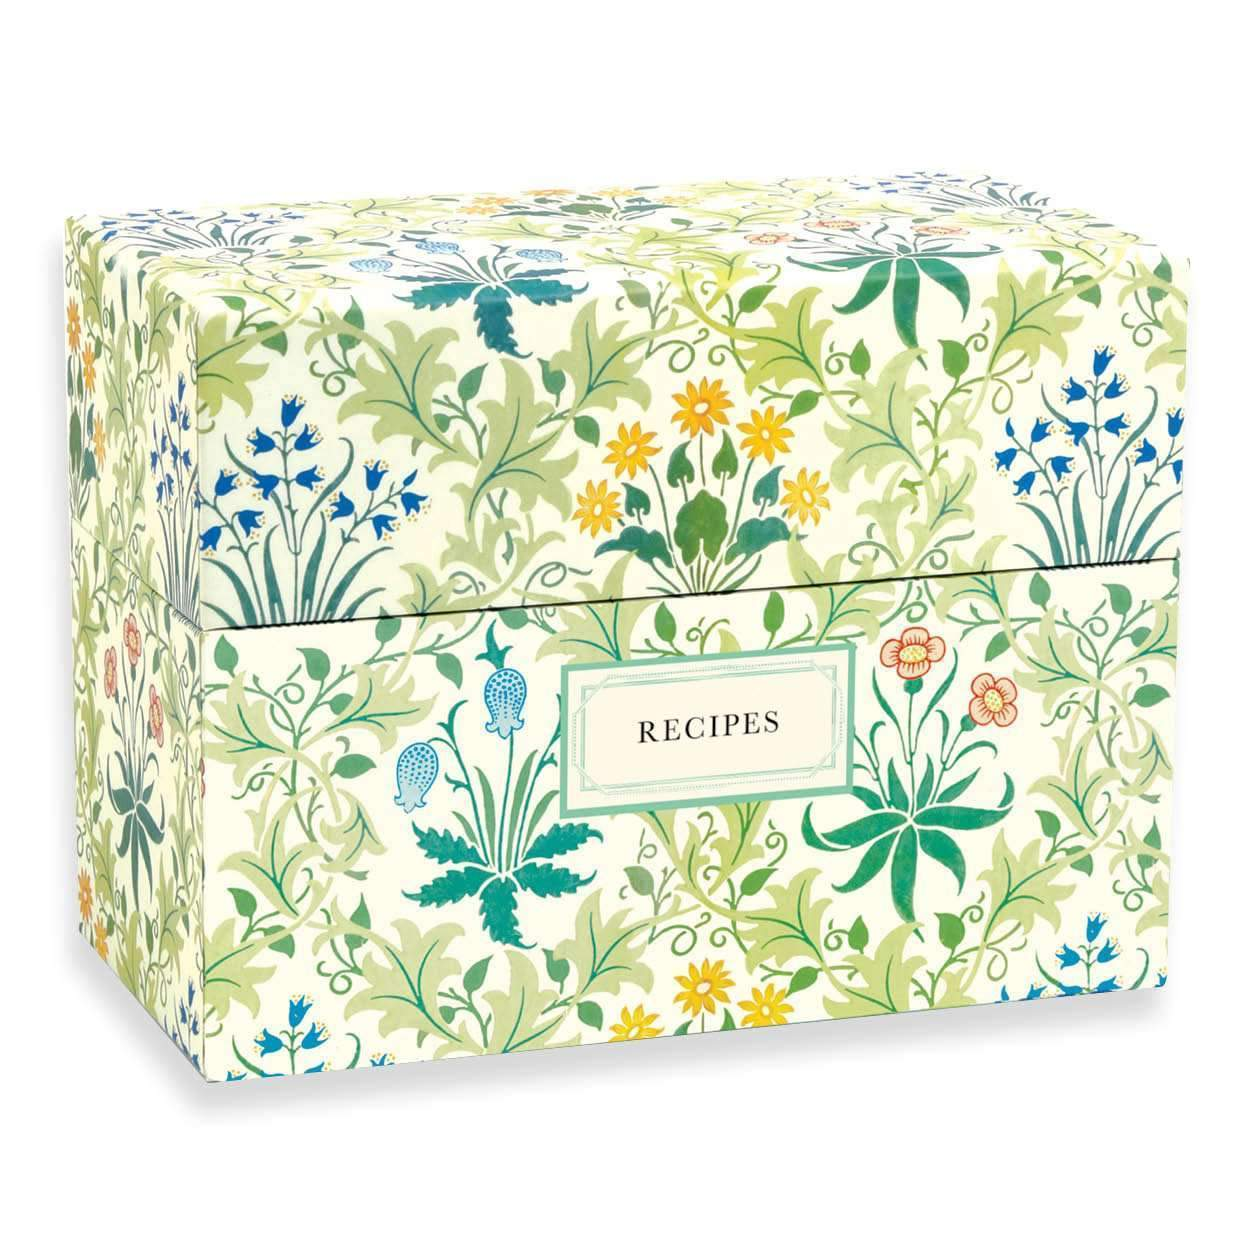 William Morris Recipe Box Sale Galison